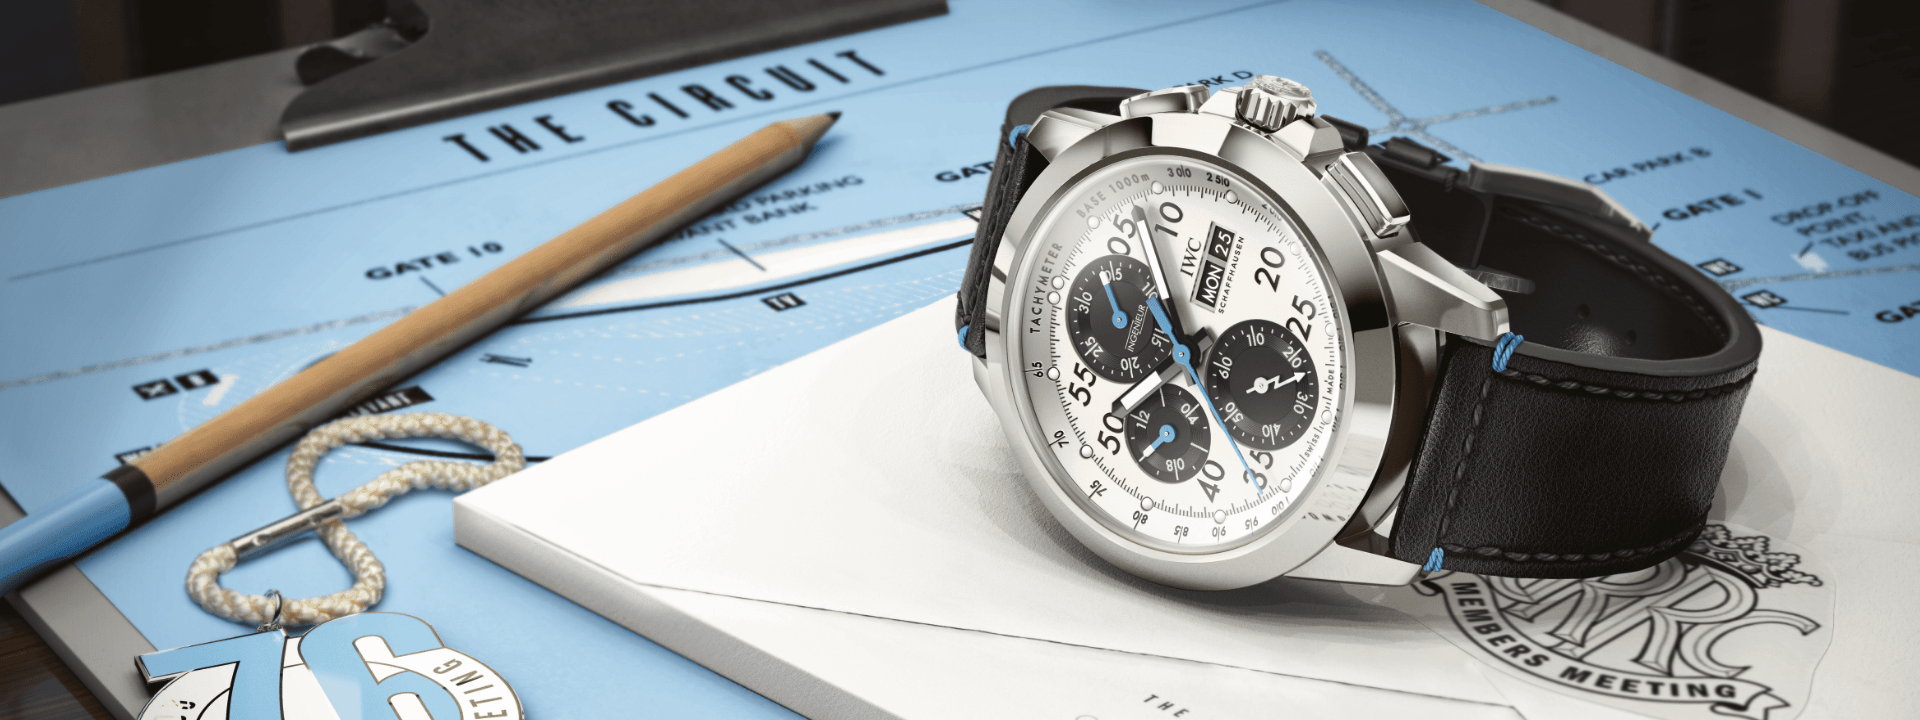 Goodwood IWC Ingenieur Chronograph Sport Edition